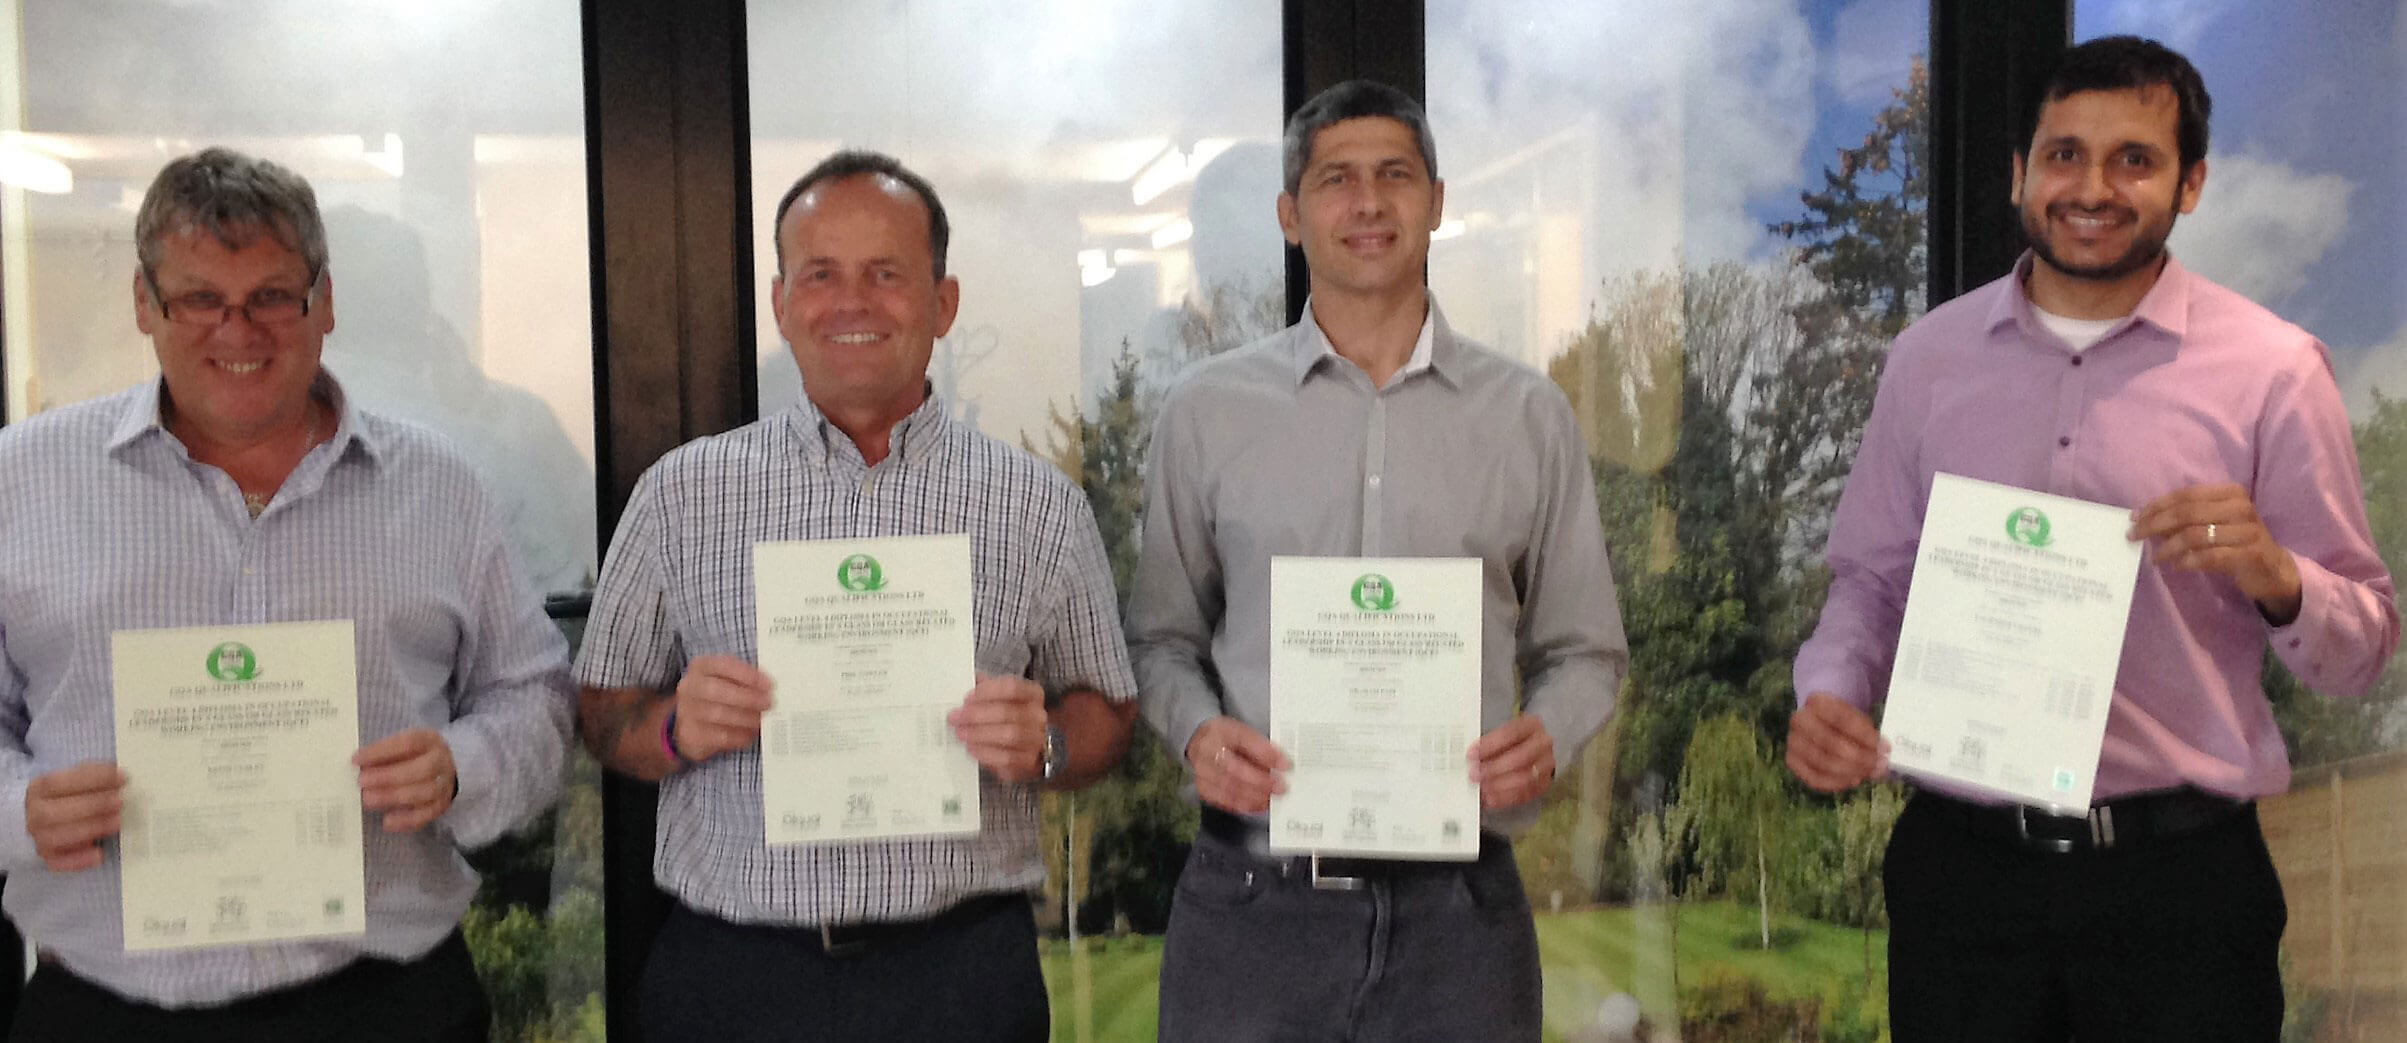 Trainee's With Qualification Certificates